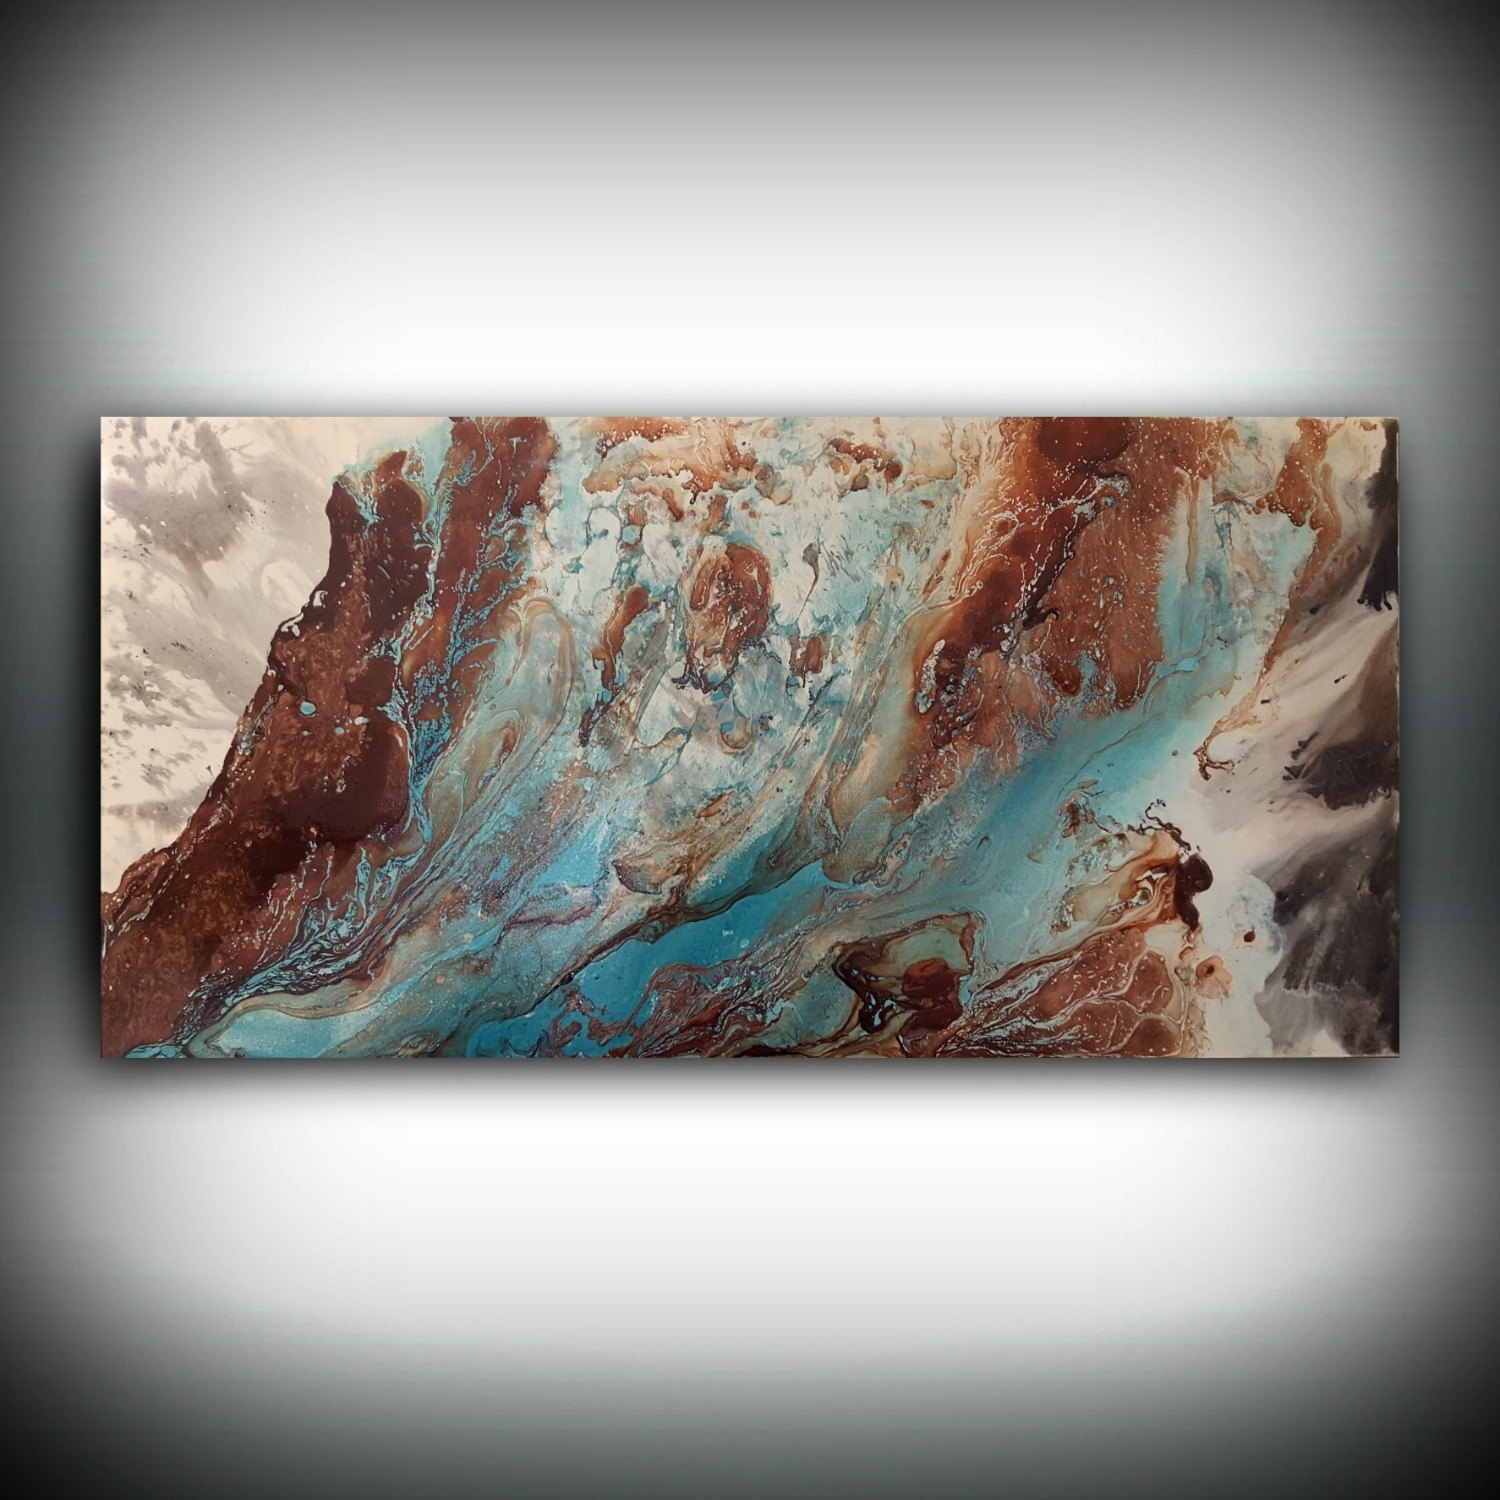 Original Painting, Art Painting Acrylic Painting Abstract Painting Intended For Most Current Abstract Art Wall Hangings (View 13 of 20)